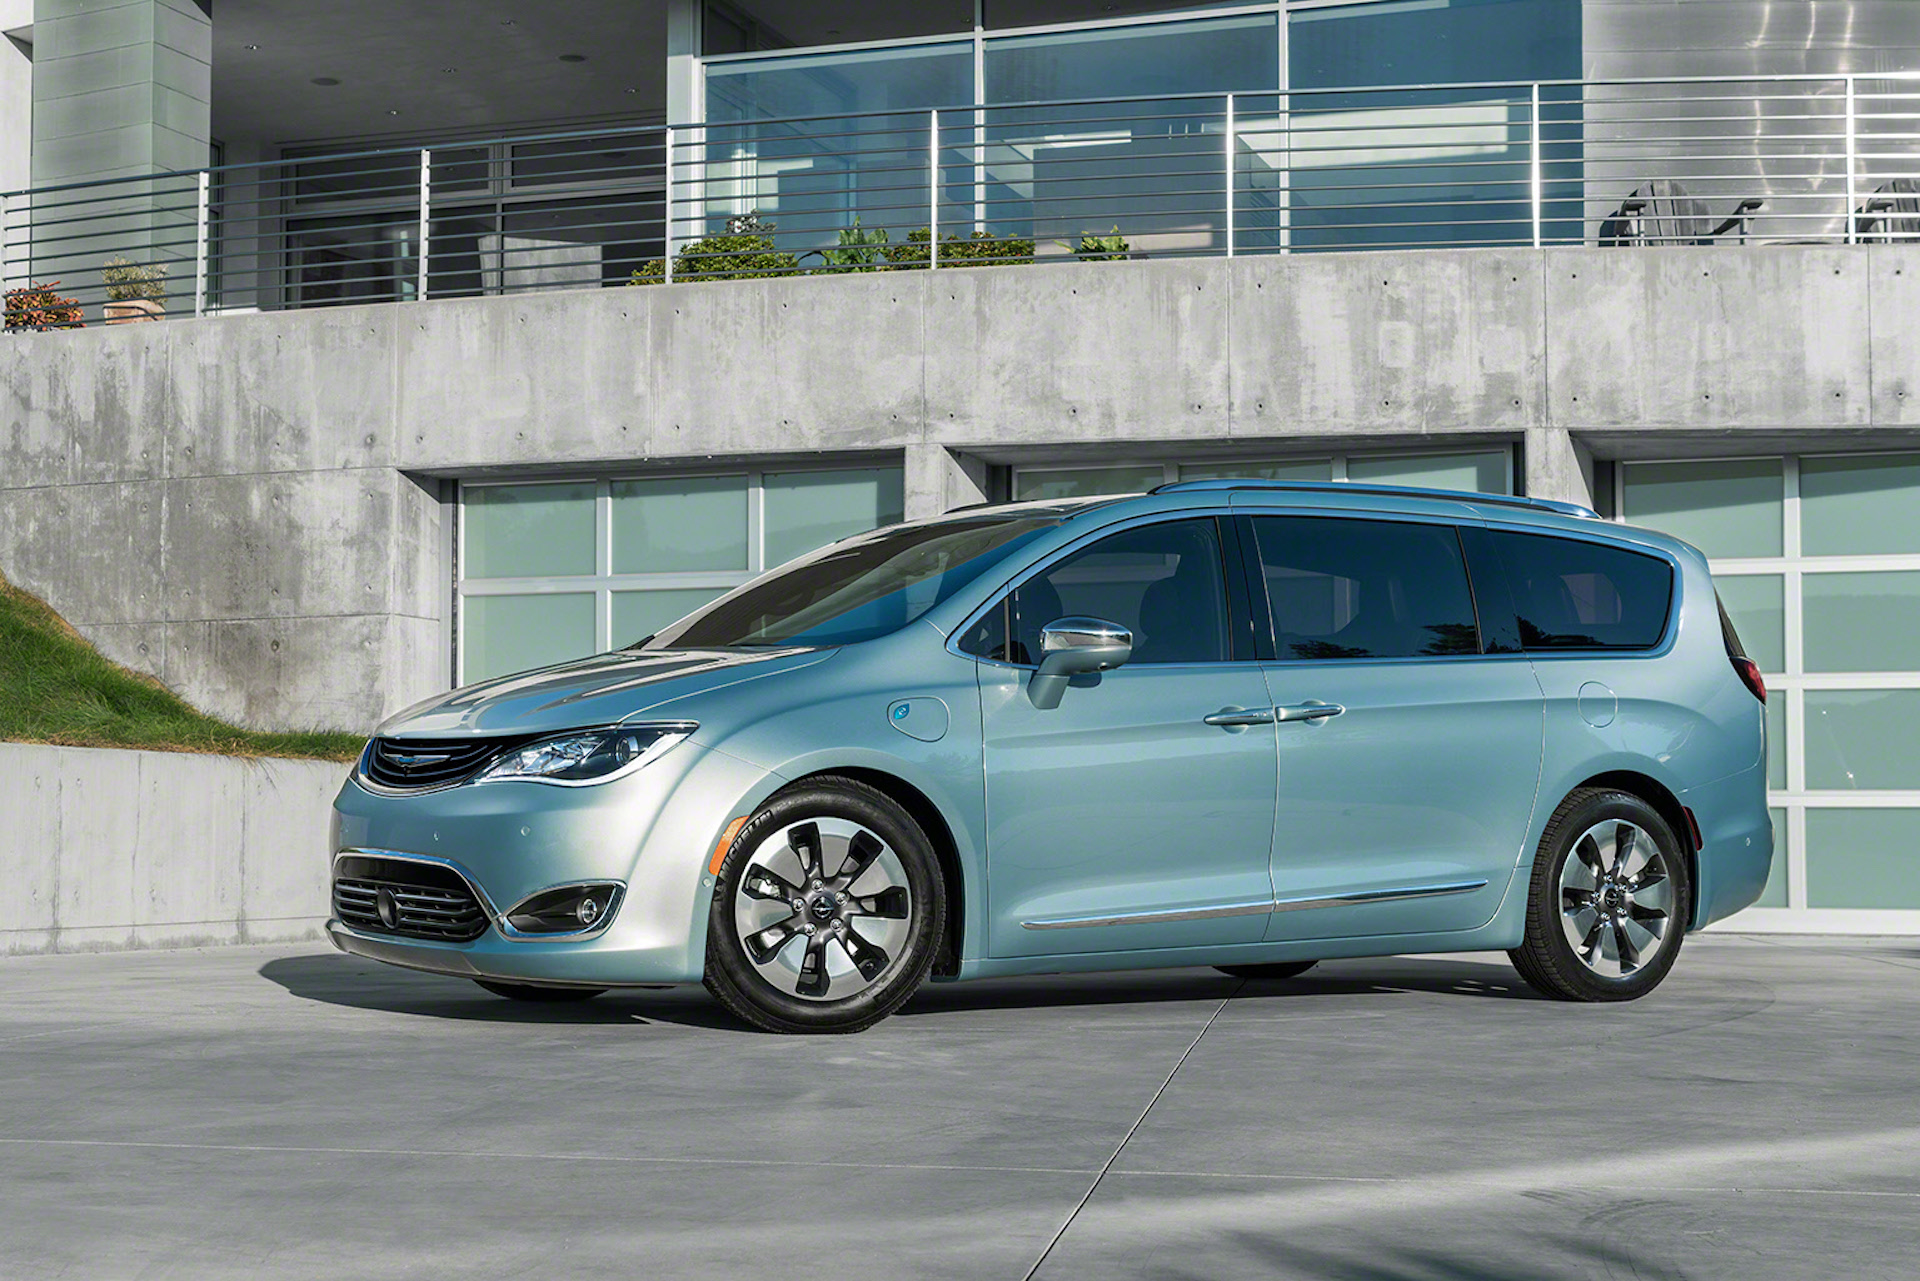 2017 chrysler pacifica hybrid more details on 30 mile plug in. Black Bedroom Furniture Sets. Home Design Ideas